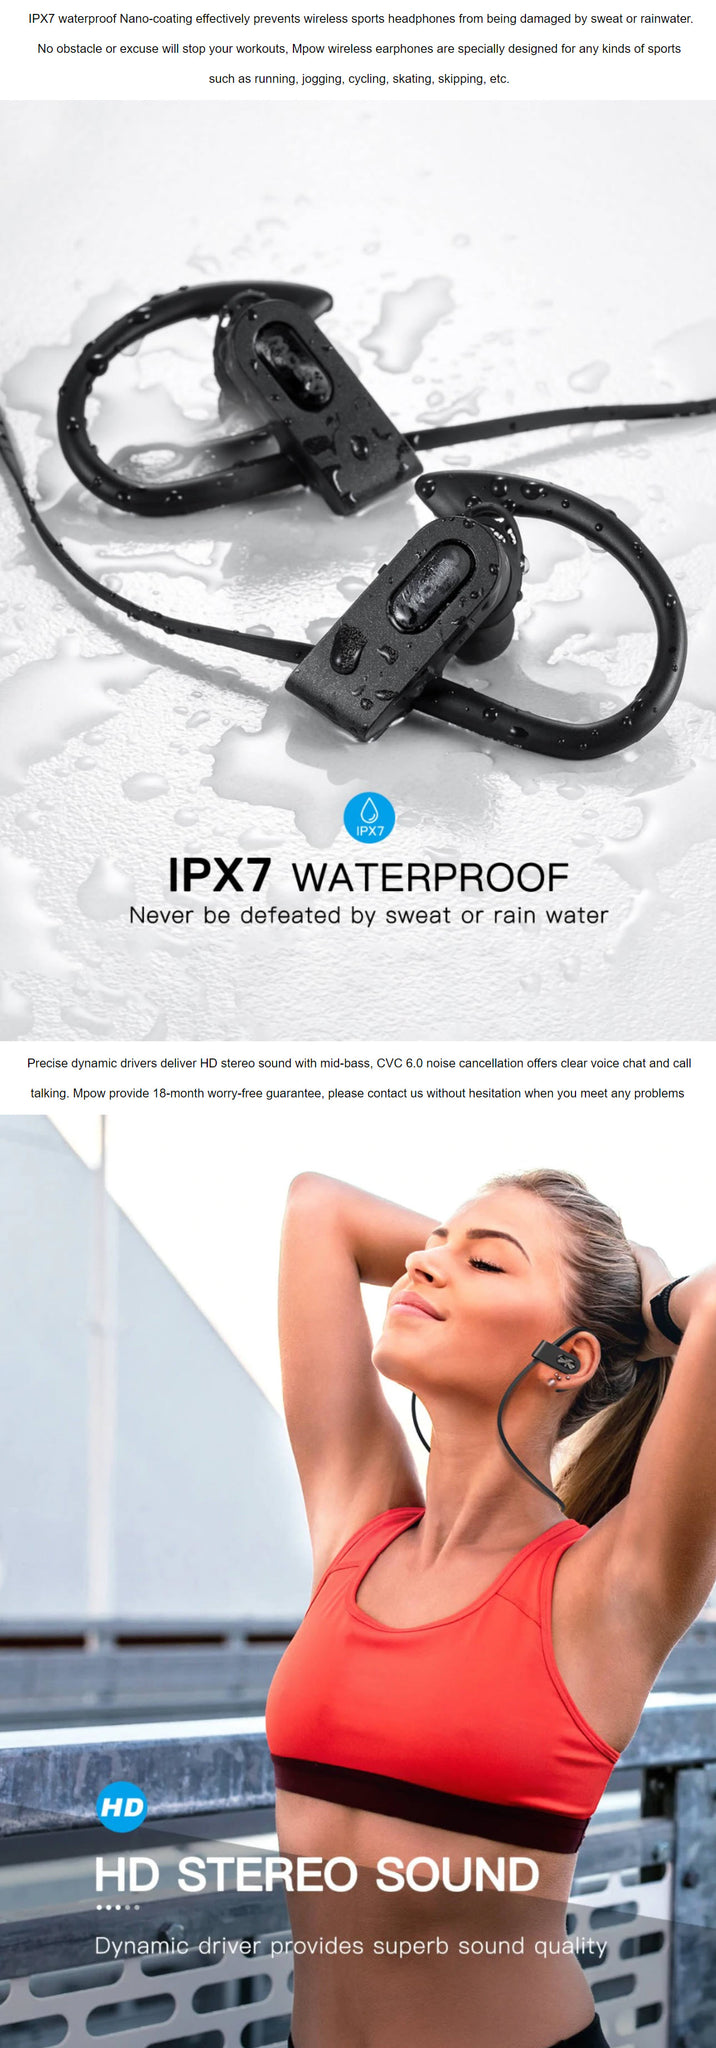 MPOW Flame 2 Sport Bluetooth Earphones IPX7 Waterproof Rating HD Stereo Sound Quality